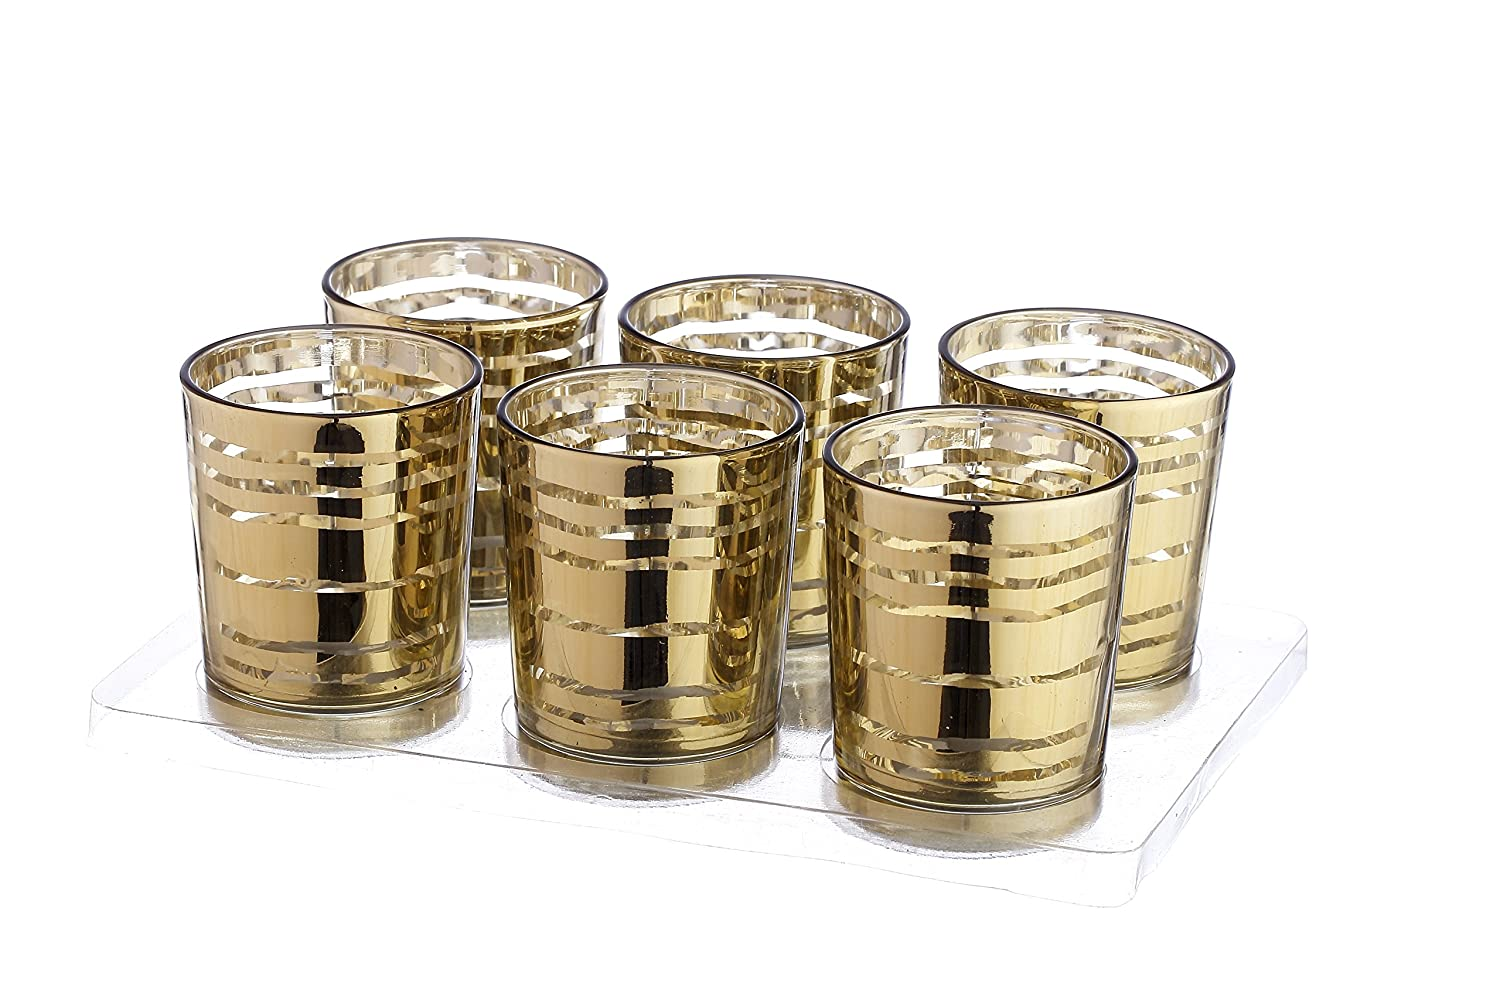 Silver Wave V-More Laser Cut Mercury Glass Votive Candle Holder Tealight Holder 2.55-inch Tall Set of 6 For Home Decor Wedding Party Celebration